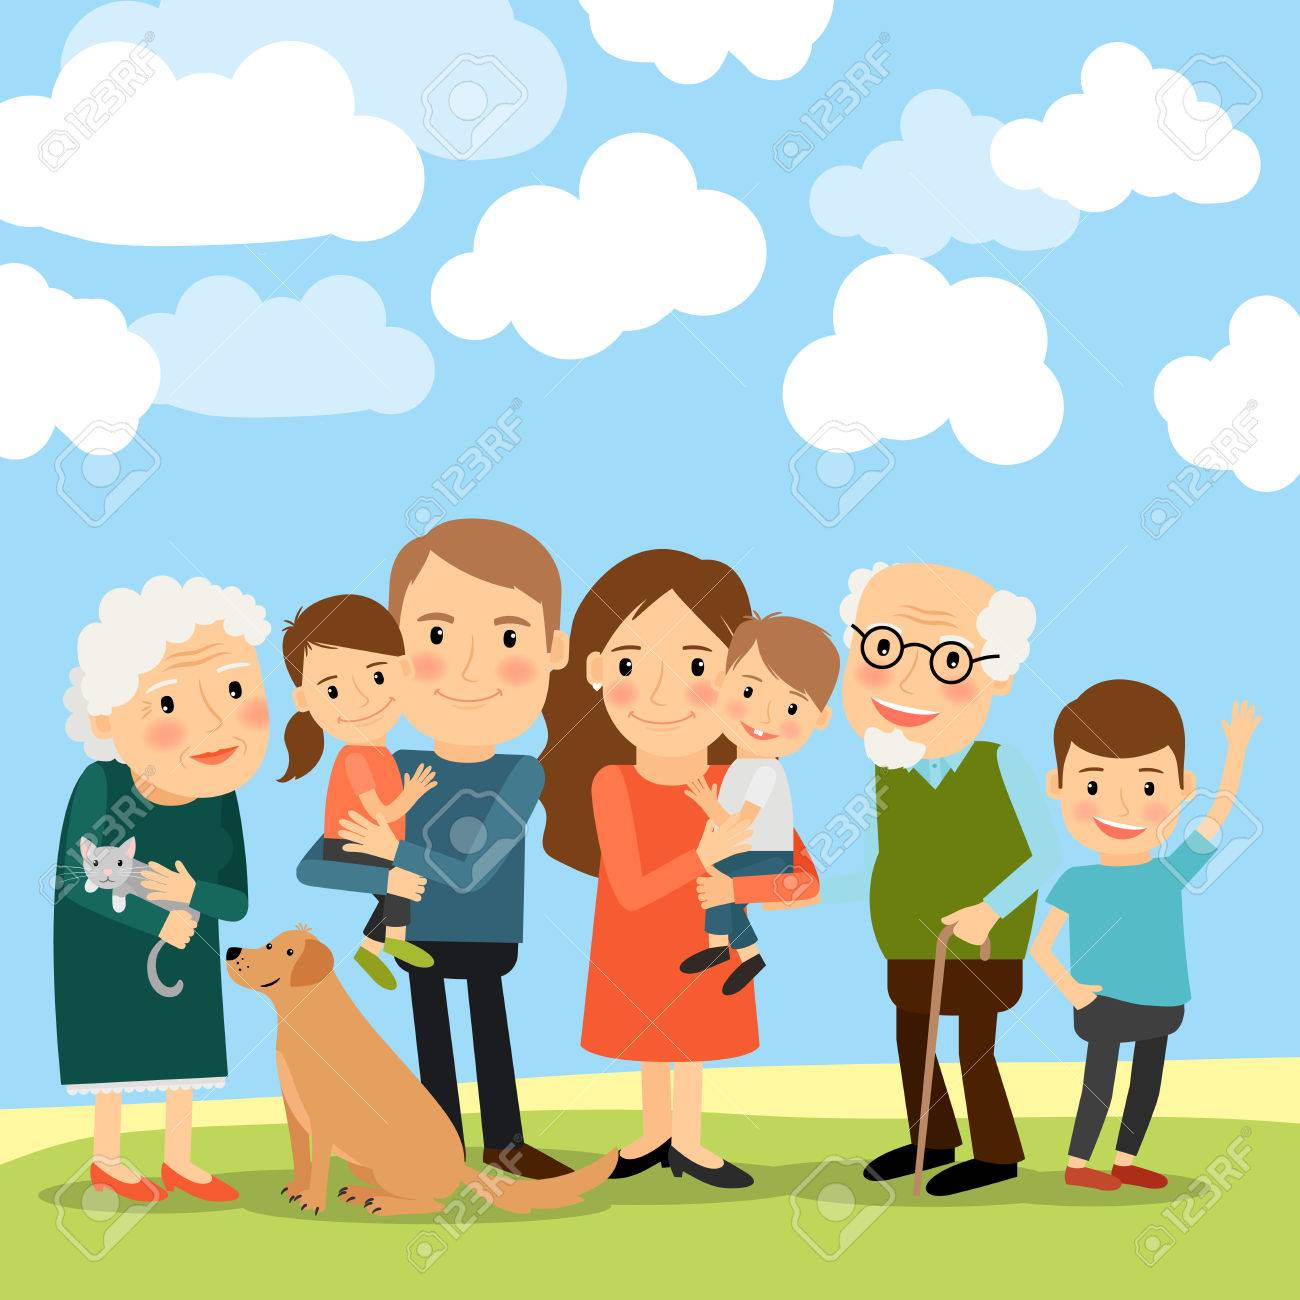 Big family and sky with clouds vector illustration - 63636834